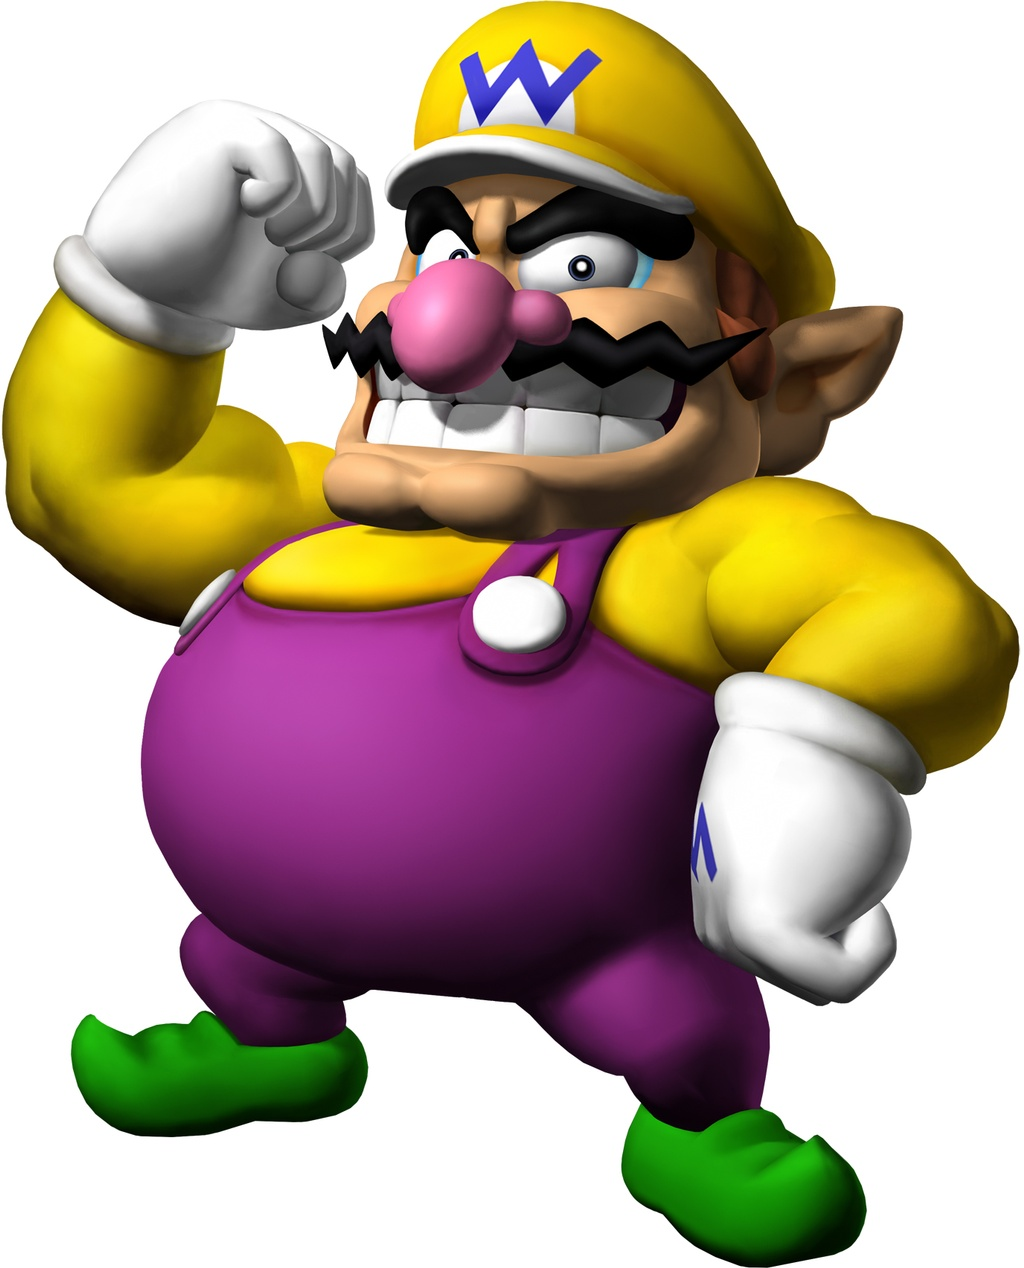 wario character scratchpad fandom powered by wikia